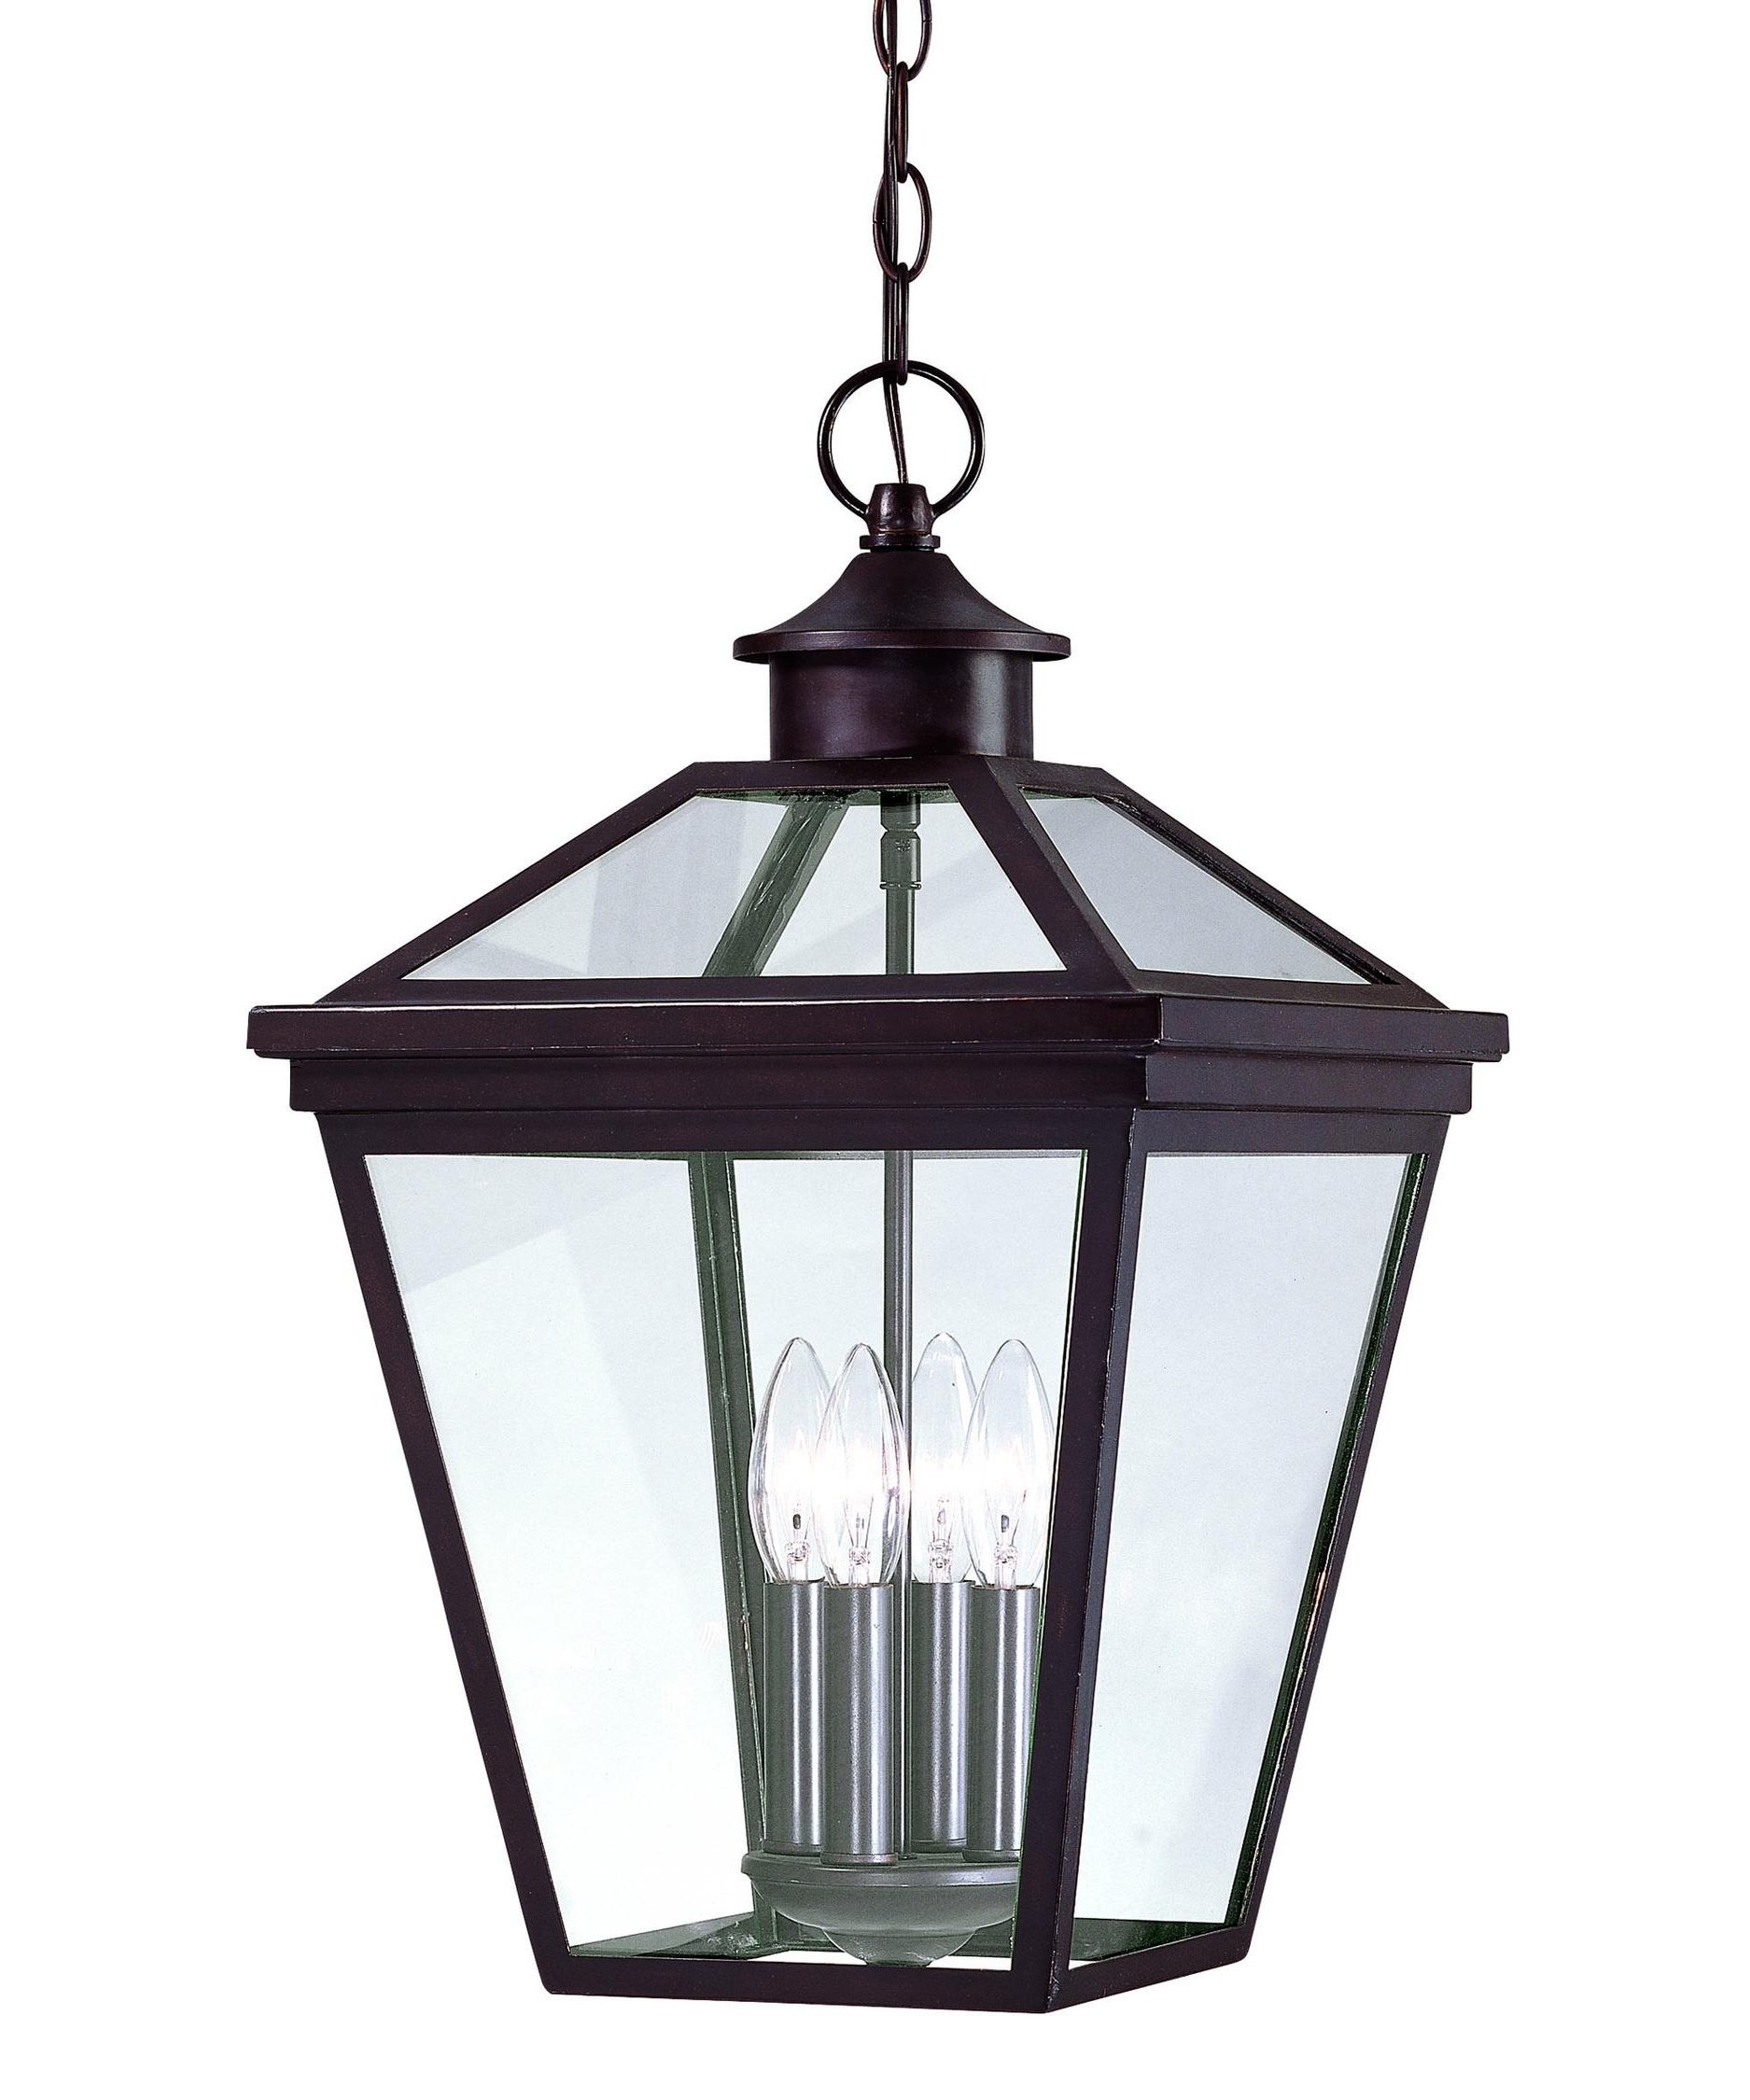 Outdoor Hanging Carriage Lights Intended For Famous Furniture : Outdoor Hanging Lanterns Lantern Elegant Charleston (View 10 of 20)